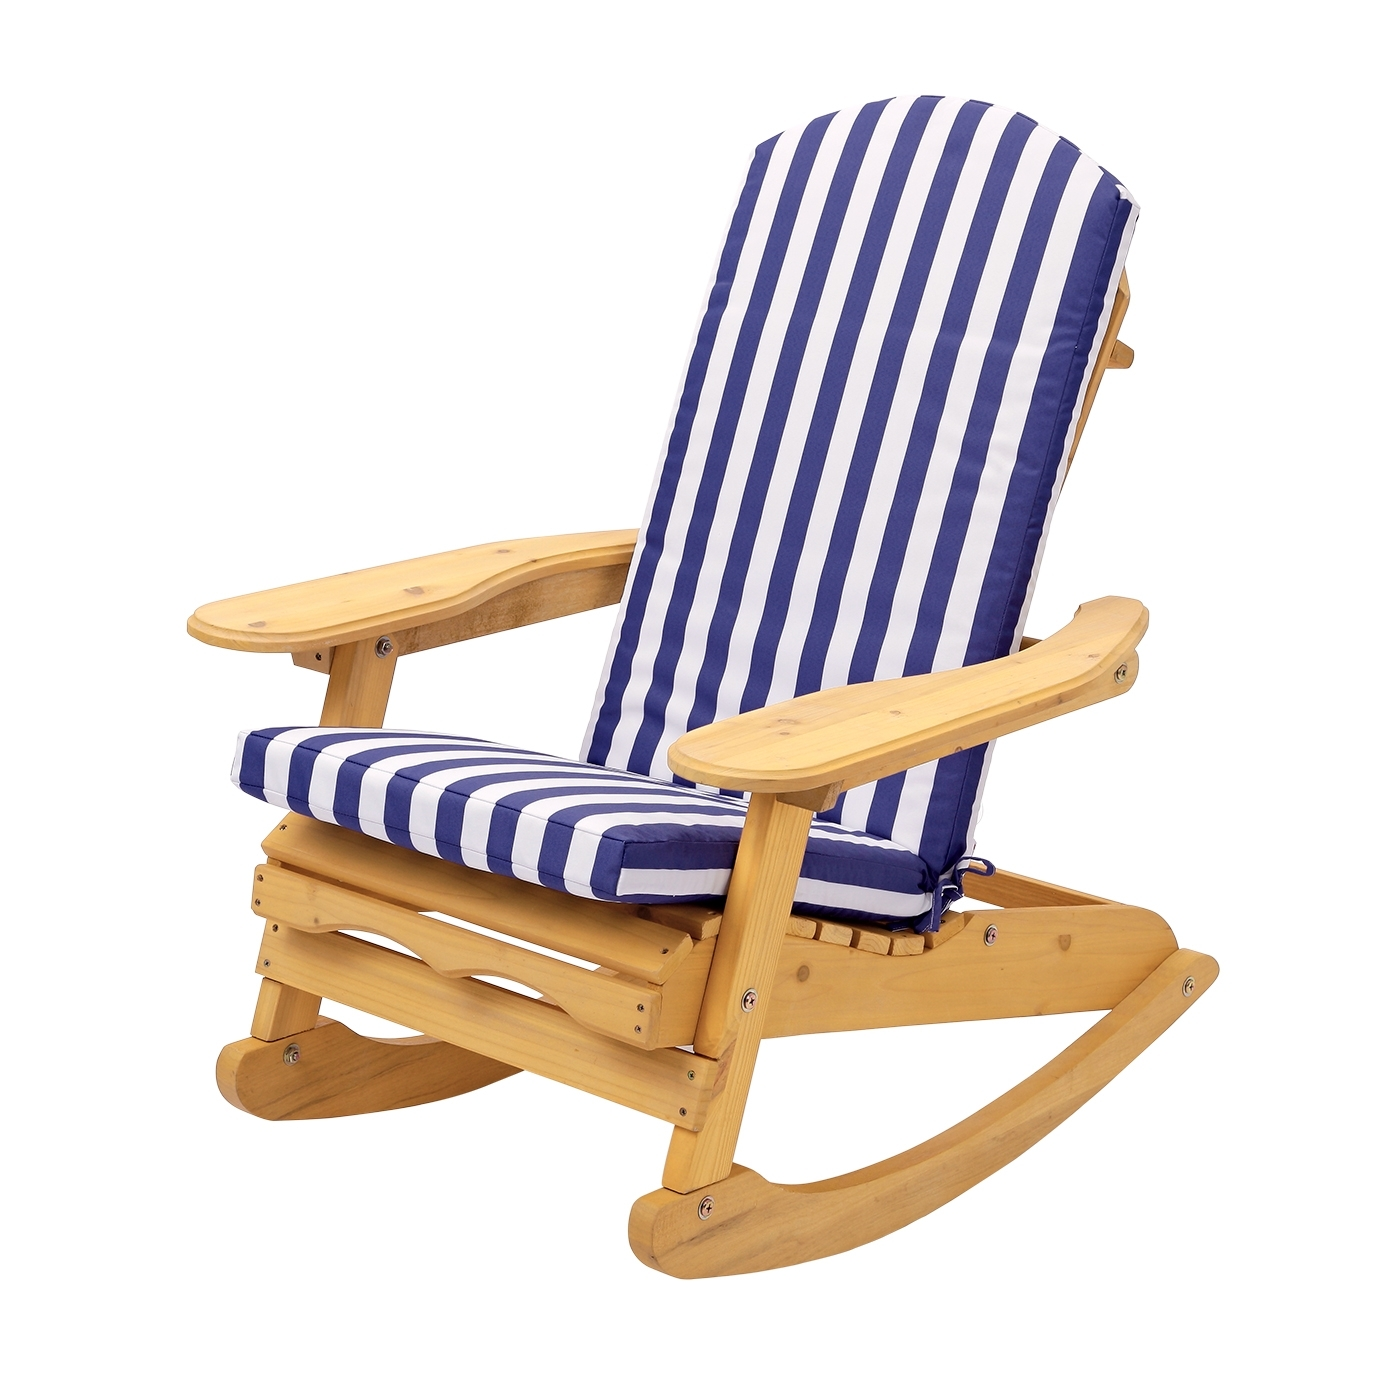 Rocking Chairs For Garden Pertaining To Most Up To Date Garden Patio Rocking Chair With Blue & White Striped Cushion (View 13 of 15)